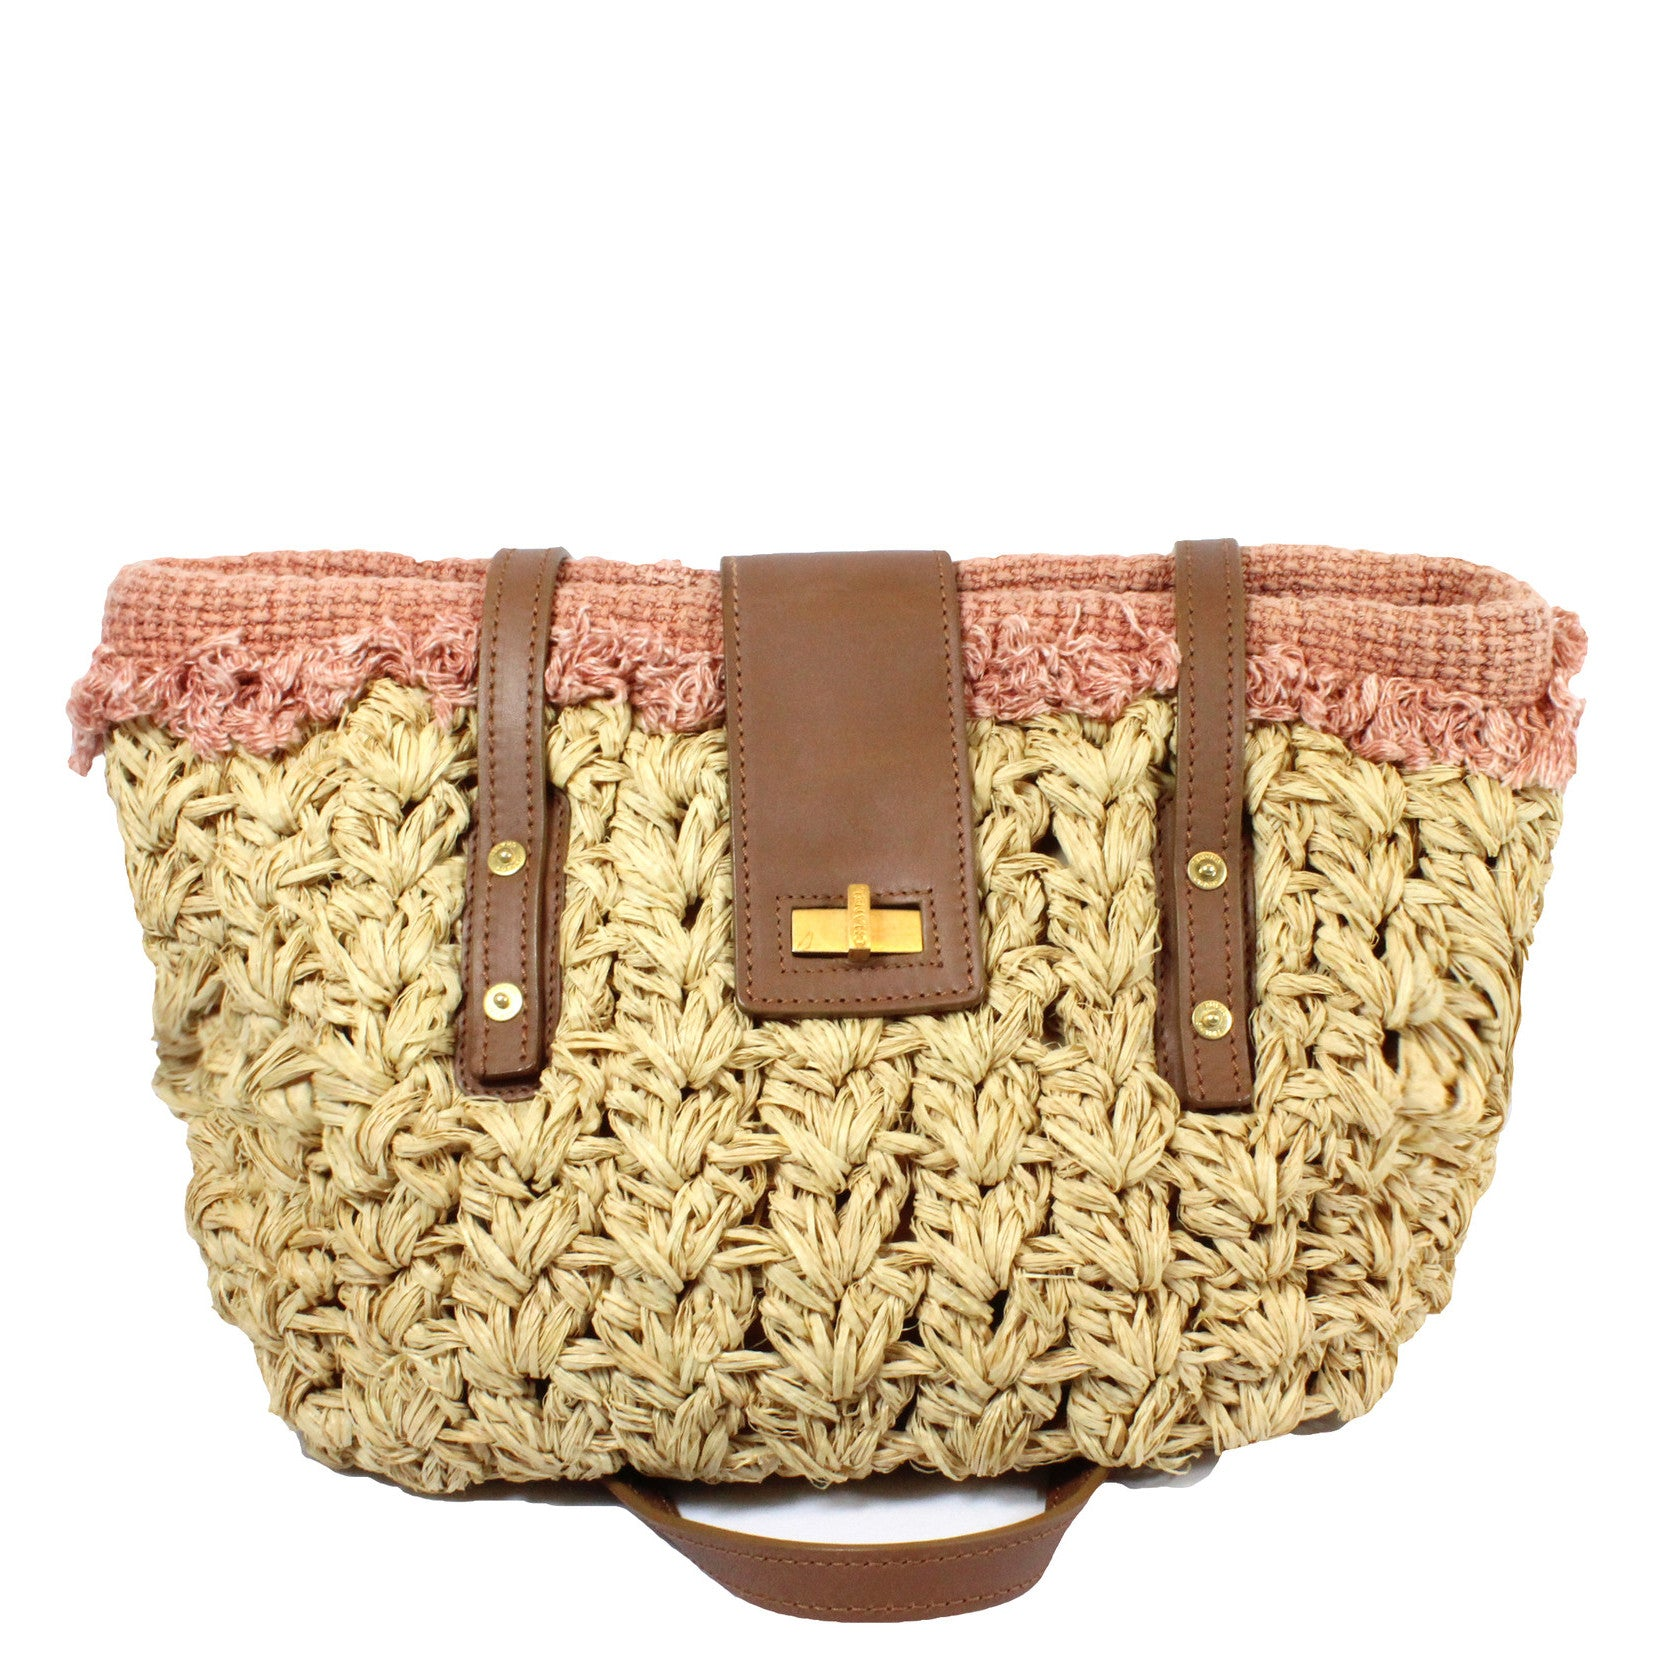 Chanel Large Woven Raffia Straw and Tweed Fringe Tote Bag - Encore Consignment - 15